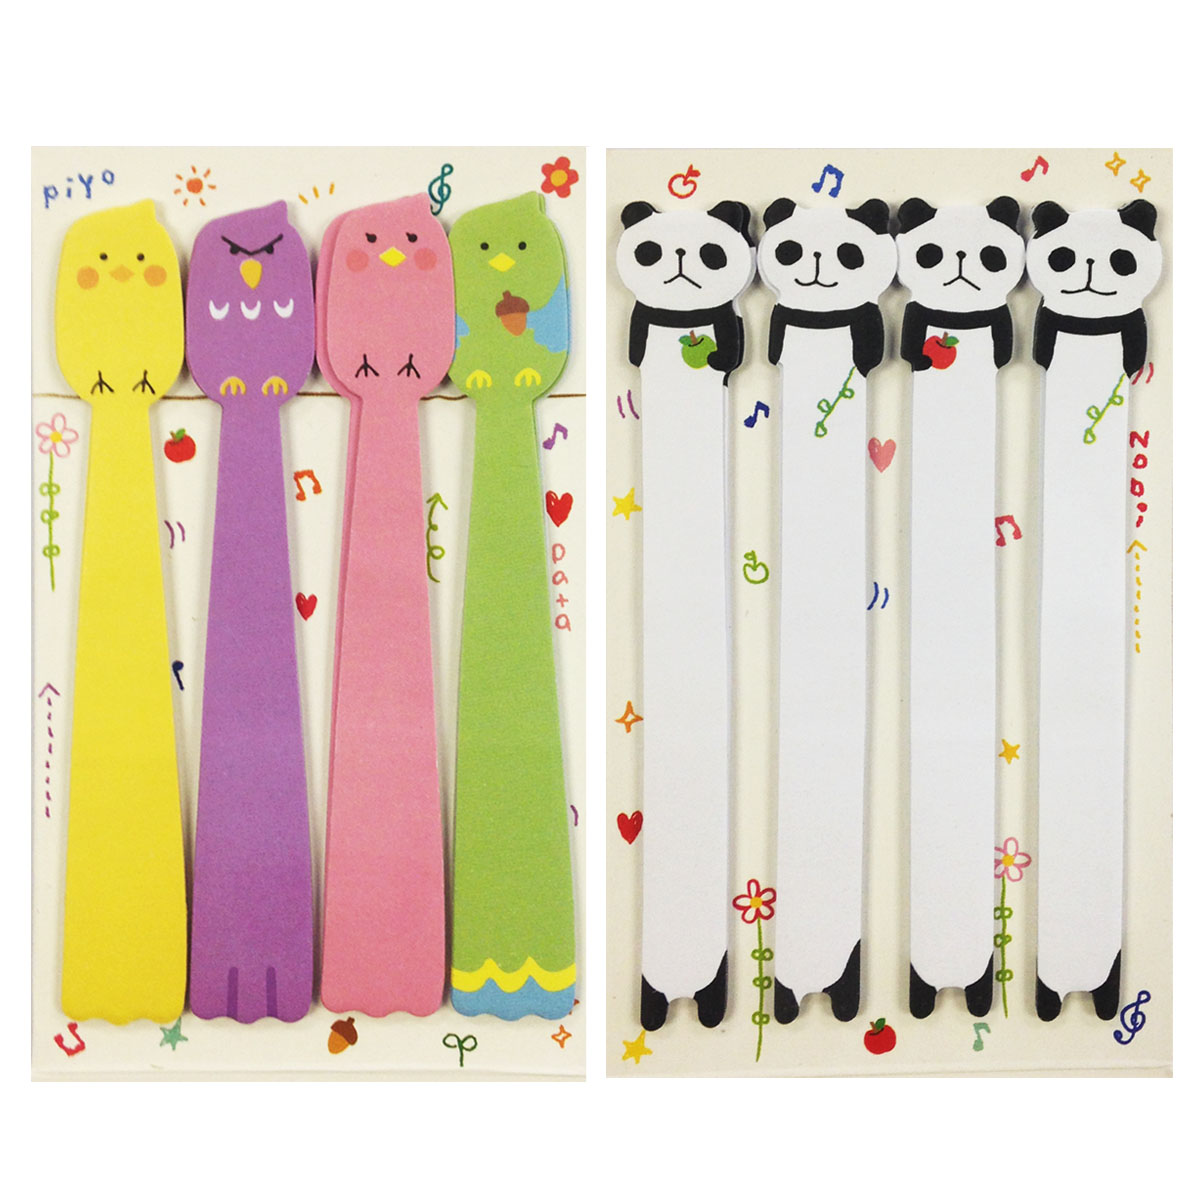 Wrapables® Bookmark Flag Index Tab Sticky Notes, Set of 2 (Panda,Tweety Birds)